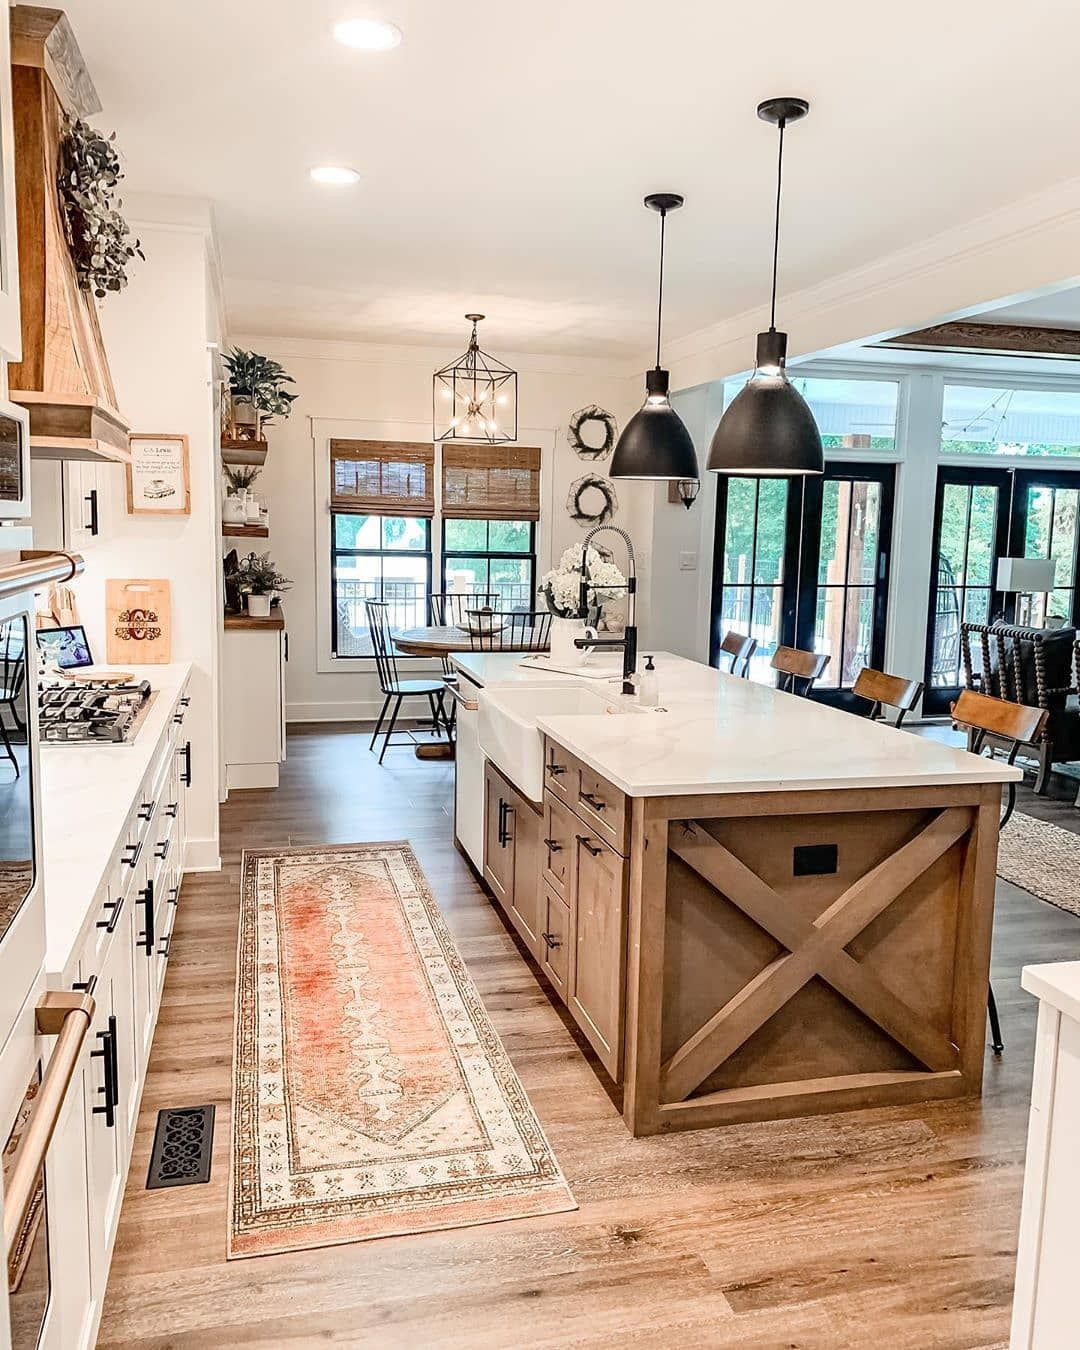 """Farmhouse Kitchen Inspo 🌾❤️ on Instagram """"What do y'all think ..."""